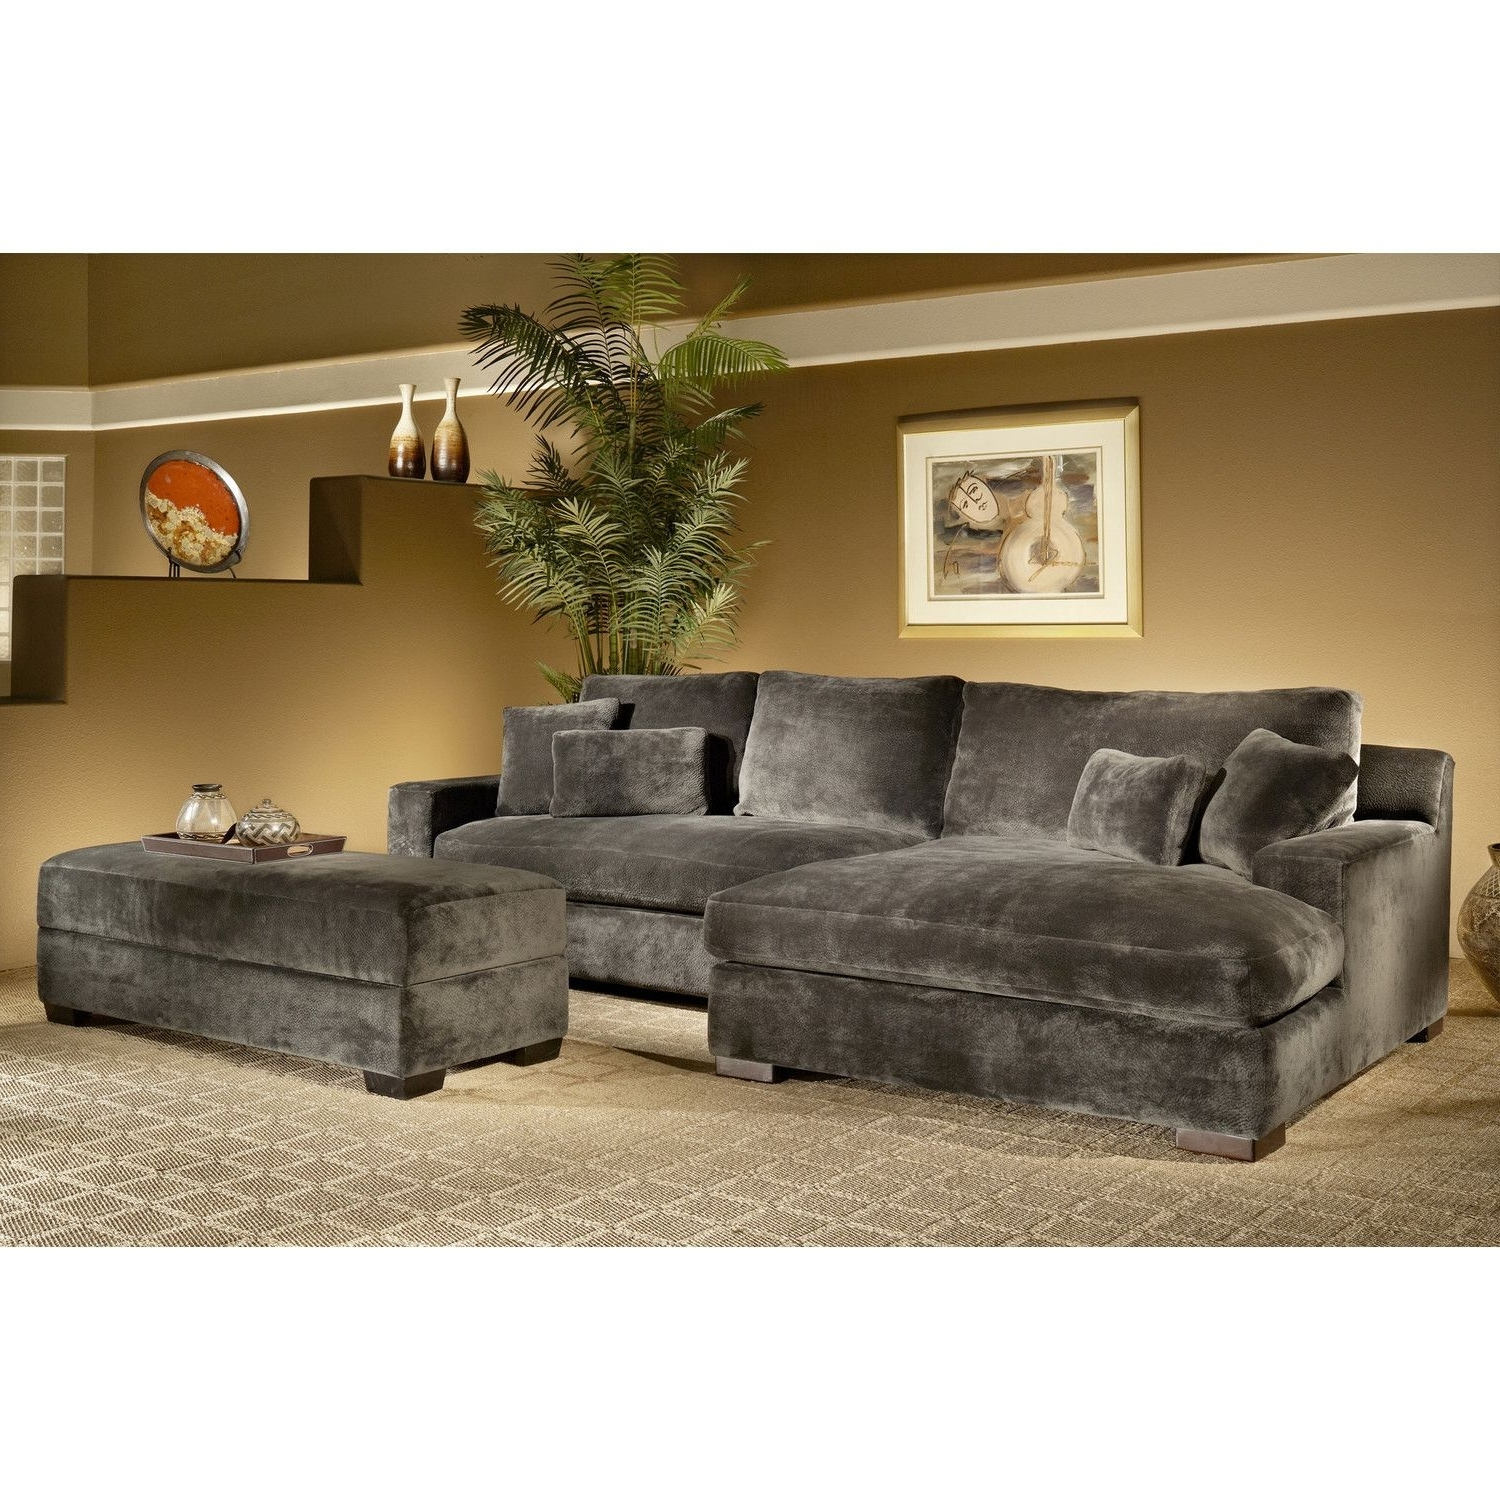 Popular Free Shipping! Shop Wayfair For Sage Avenue Bailey Sectional Pertaining To Wayfair Sectional Sofas (View 6 of 20)